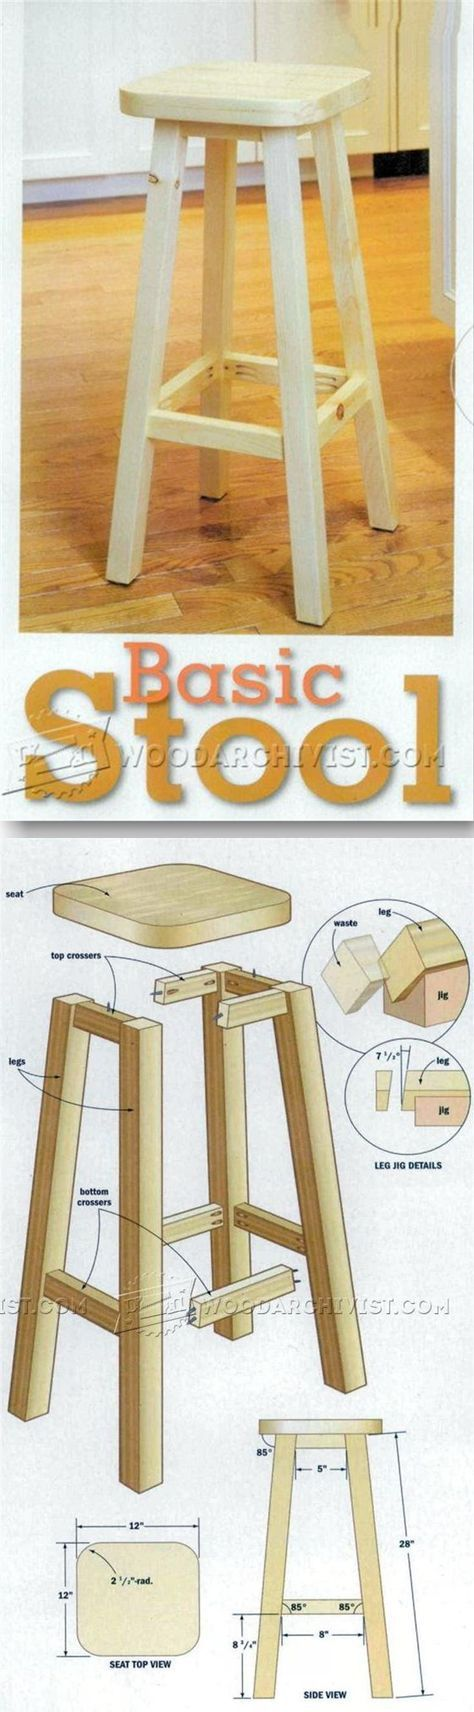 Kitchen Stool Plans   Furniture Plans And Projects   WoodArchivist.com